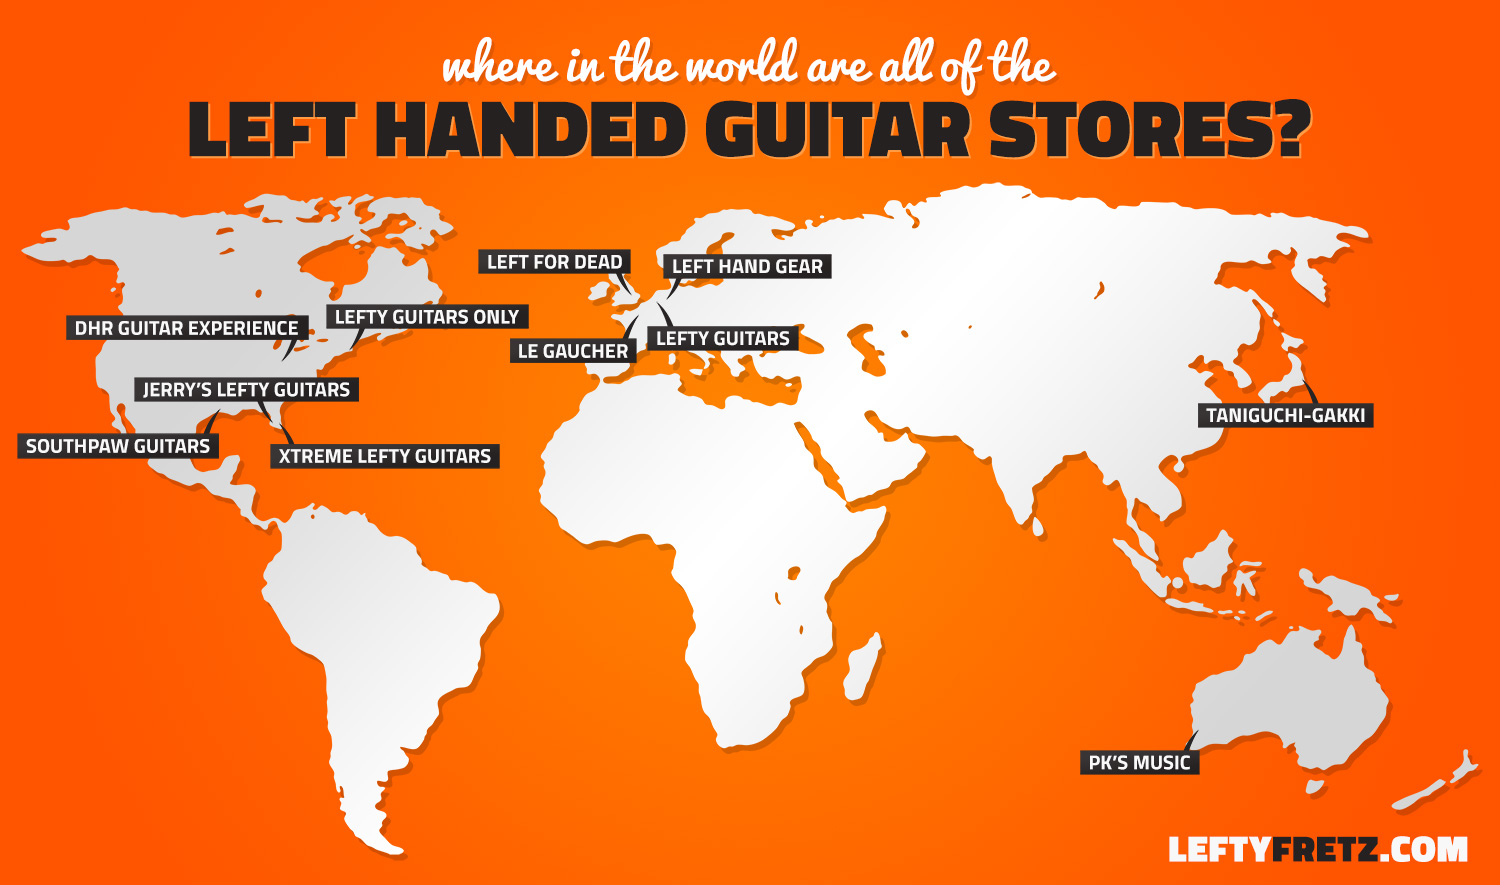 Left Handed Guitars Stores : where can i buy a left handed guitar lefty guitar stores ~ Russianpoet.info Haus und Dekorationen